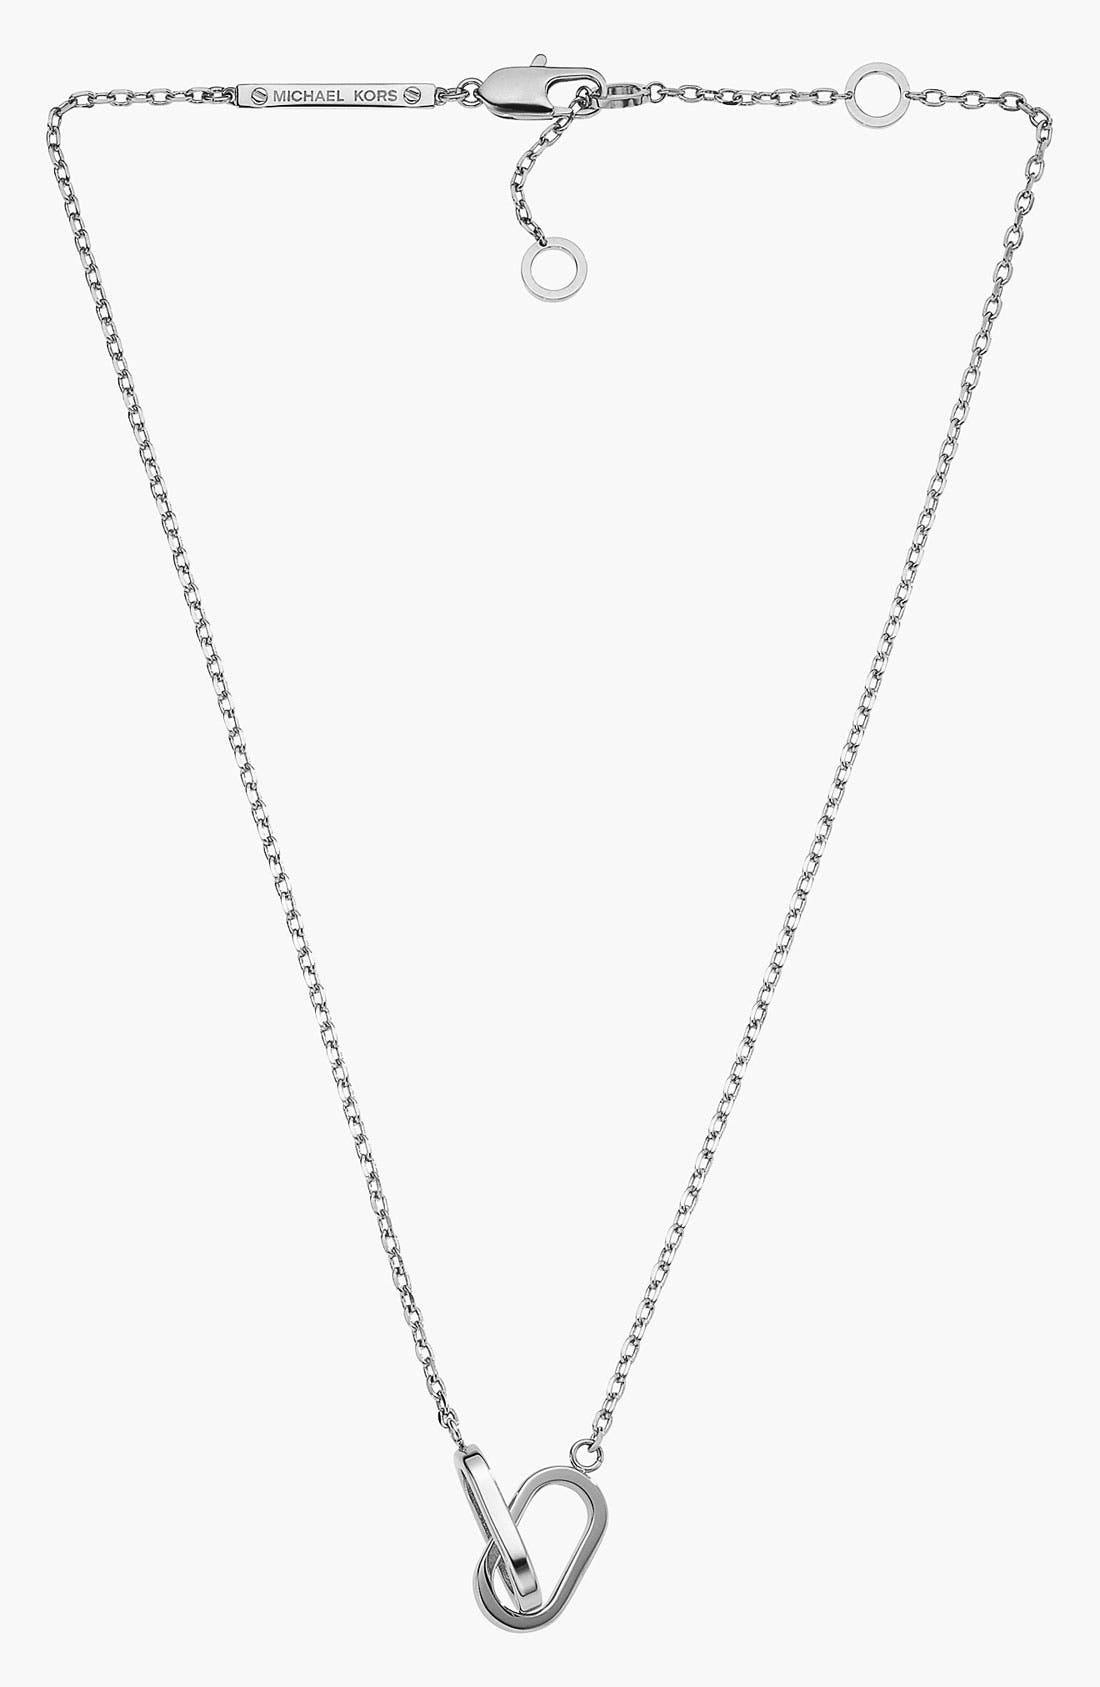 Alternate Image 1 Selected - Michael Kors 'Status' Link Necklace